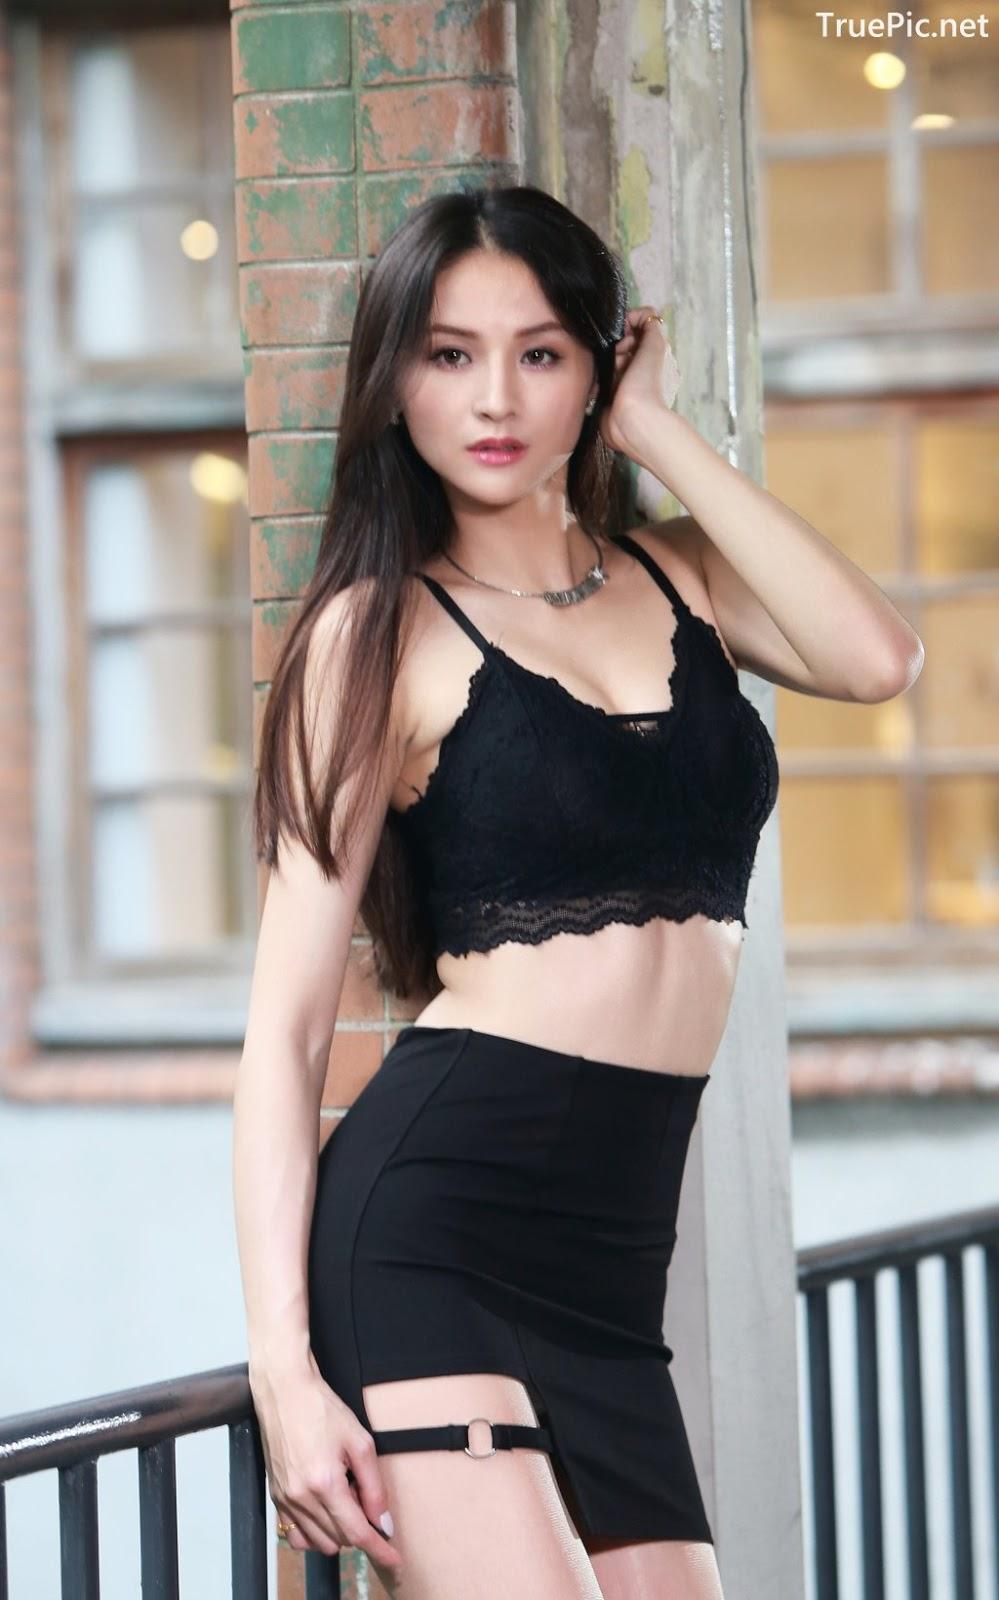 Image-Taiwanese-Beautiful-Long-Legs-Girl-雪岑Lola-Black-Sexy-Short-Pants-and-Crop-Top-Outfit-TruePic.net- Picture-21